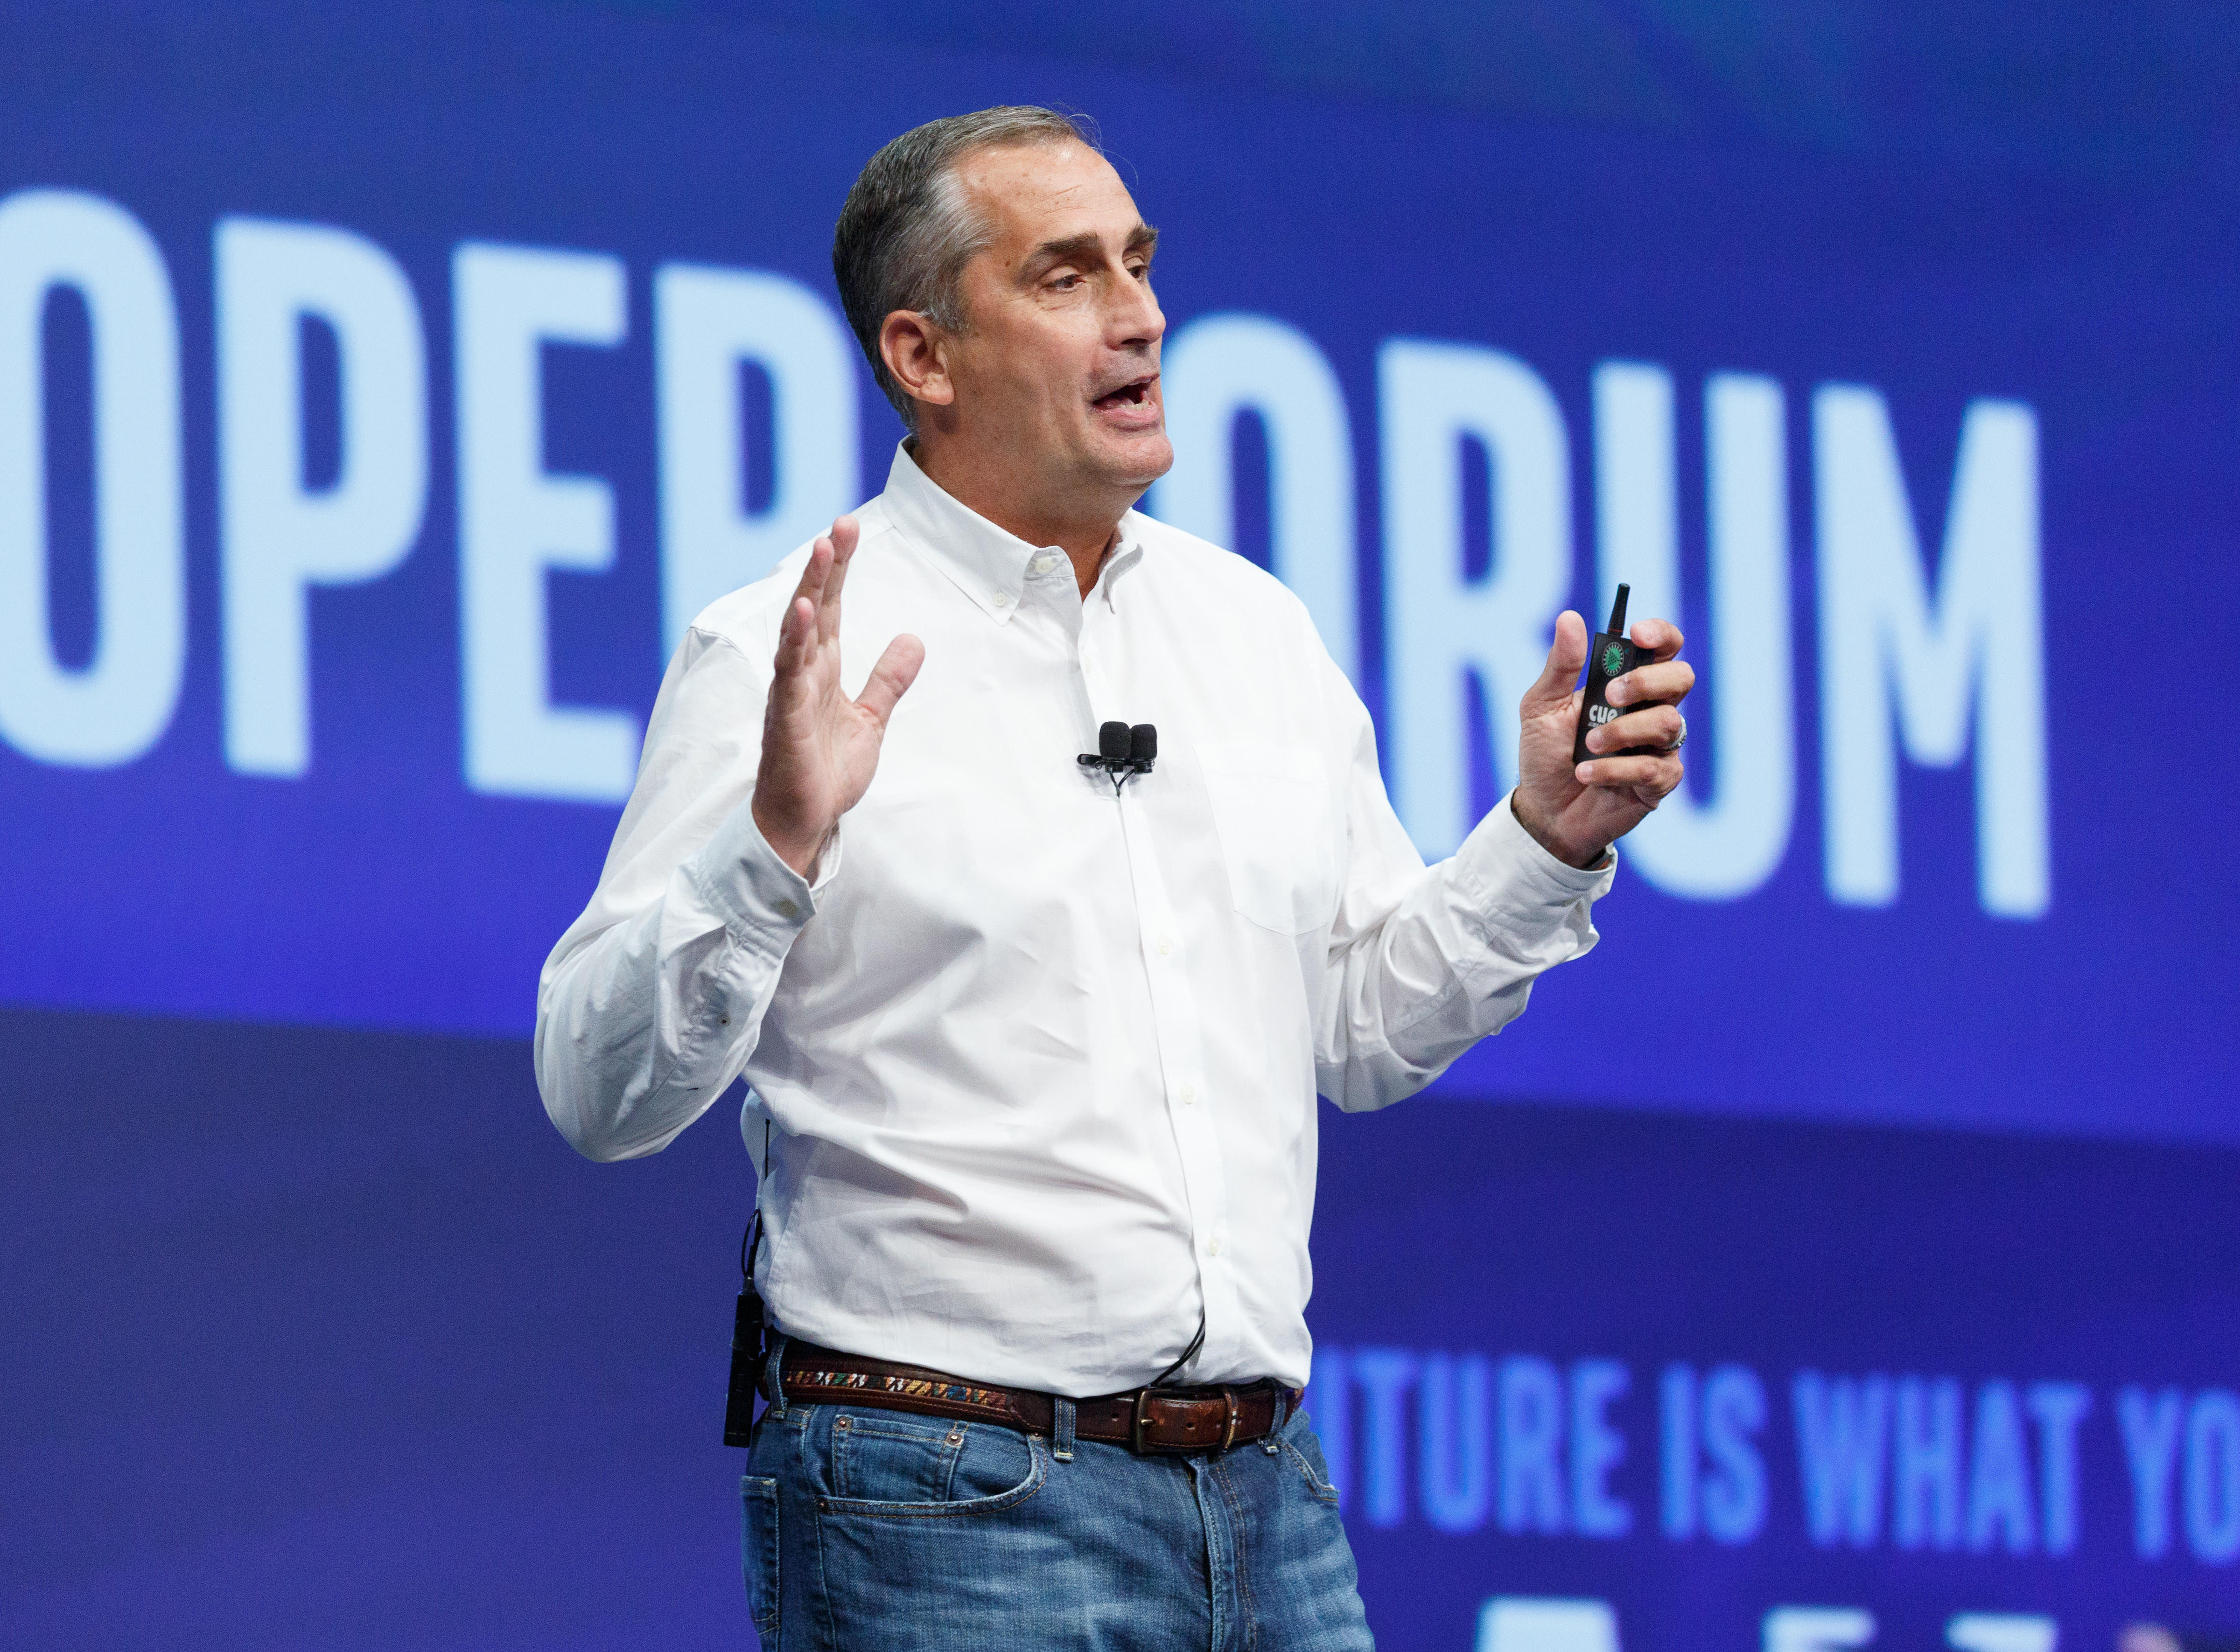 Intel CEO Brian Krzanich on stage at the IDF developer conference in 2016. The company said Tuesday that fixes for the Spectre and Meltdown vulnerabilities were causing slowdowns of 6 percent or less.